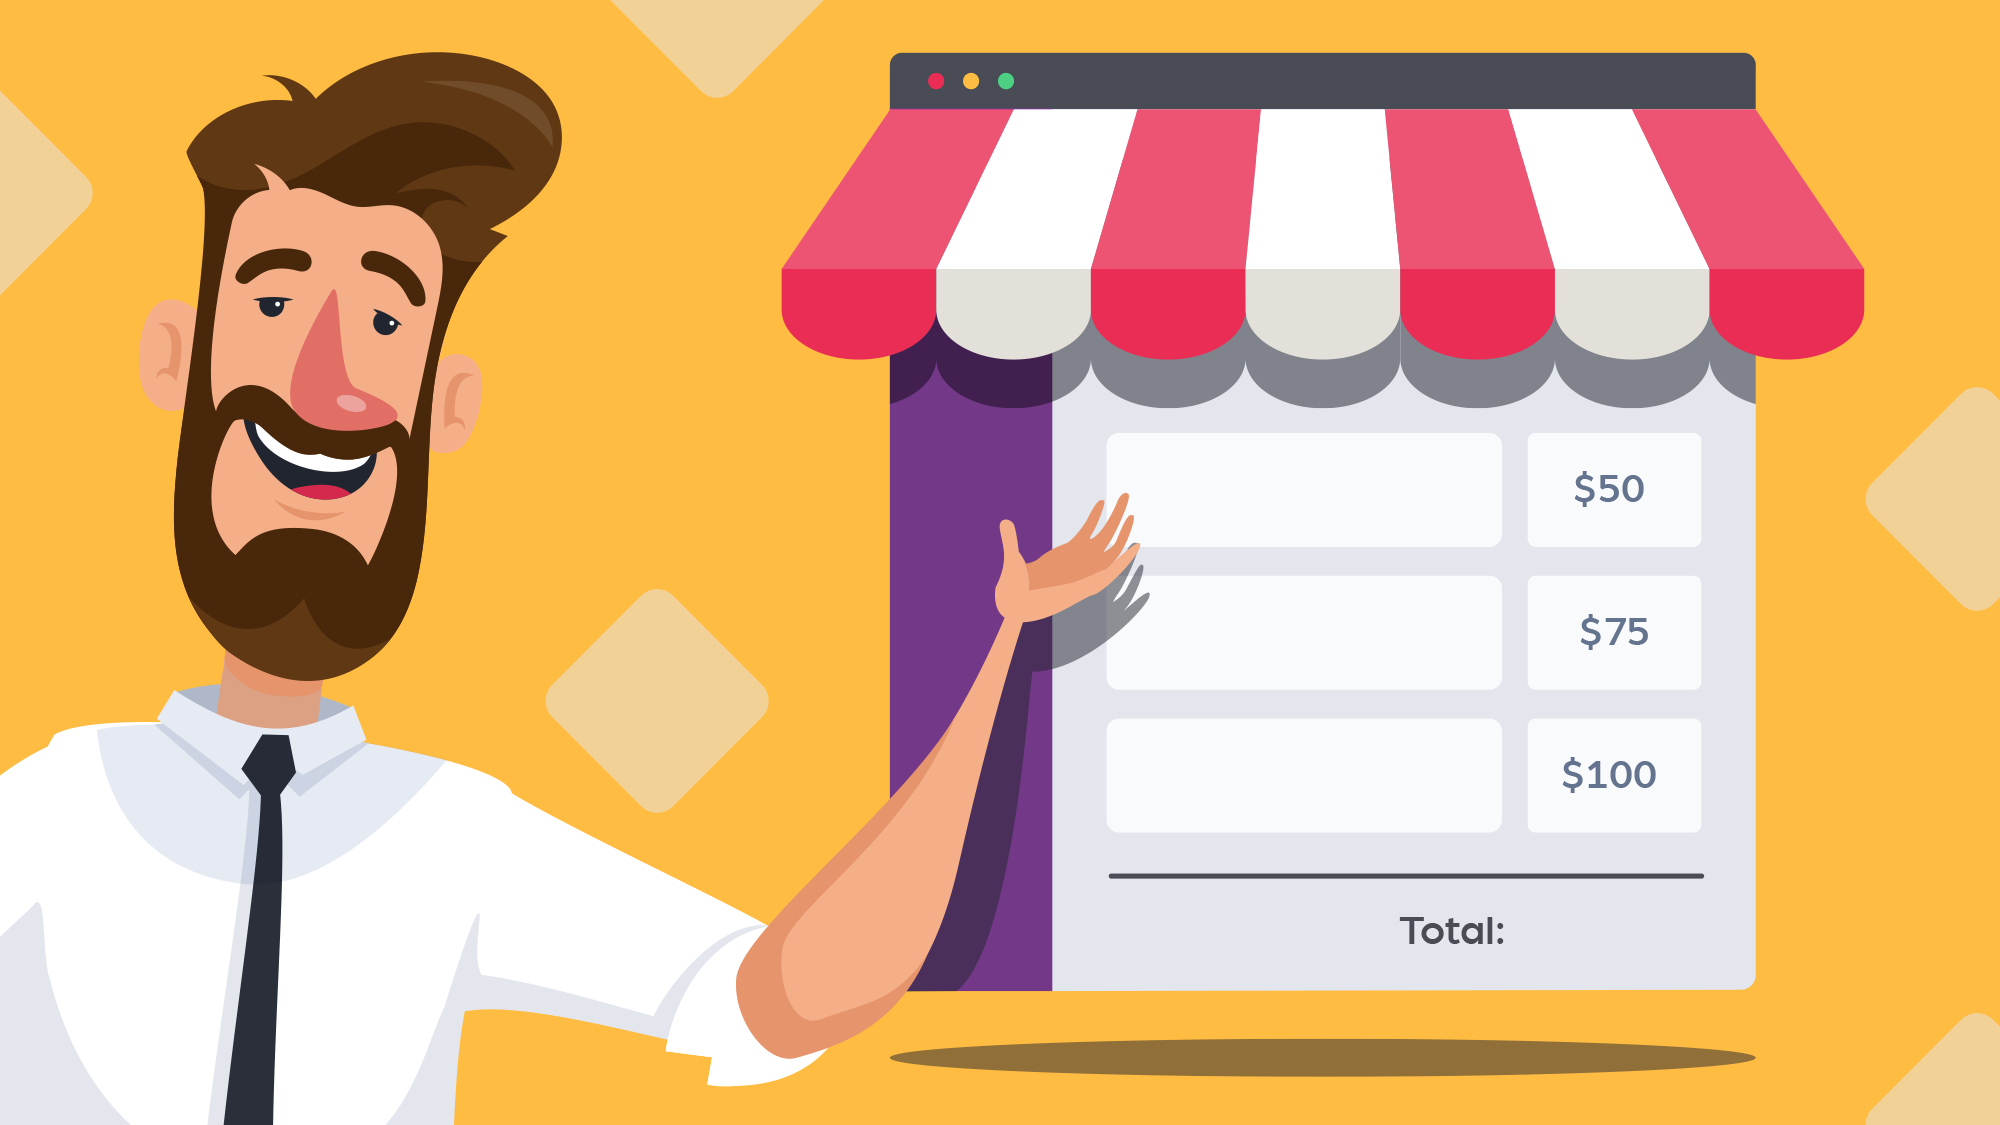 Ecommerce Business Proposal Guide